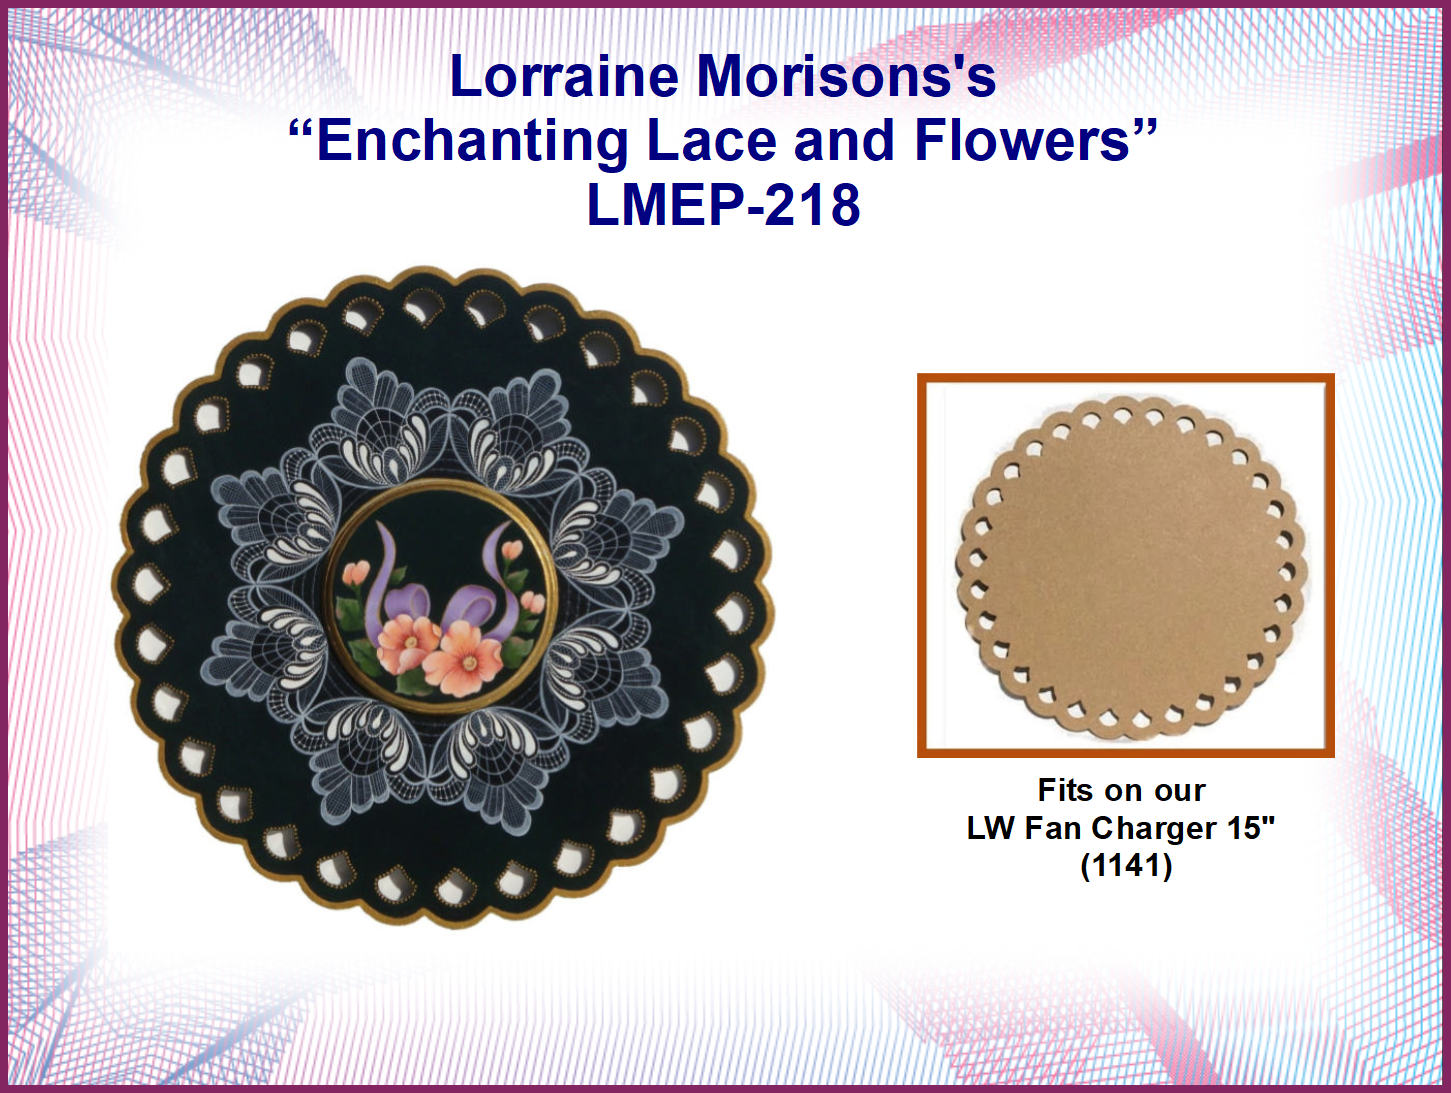 lm-enchanting-lace-and-flowers-collage-lmep218.jpg